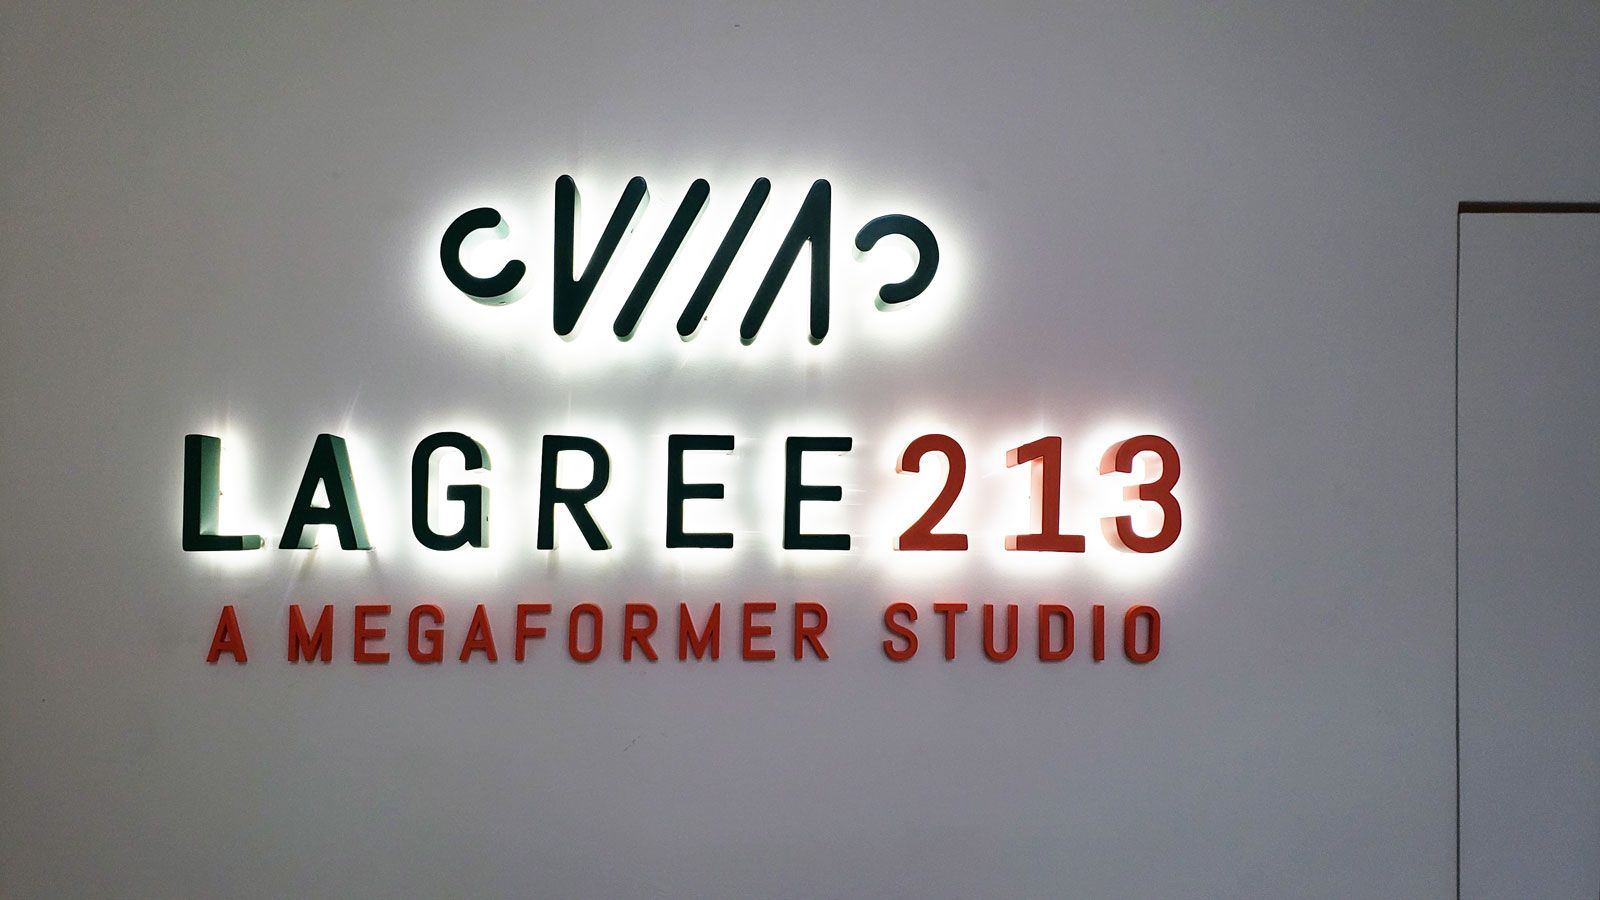 lagree213 backlit sign